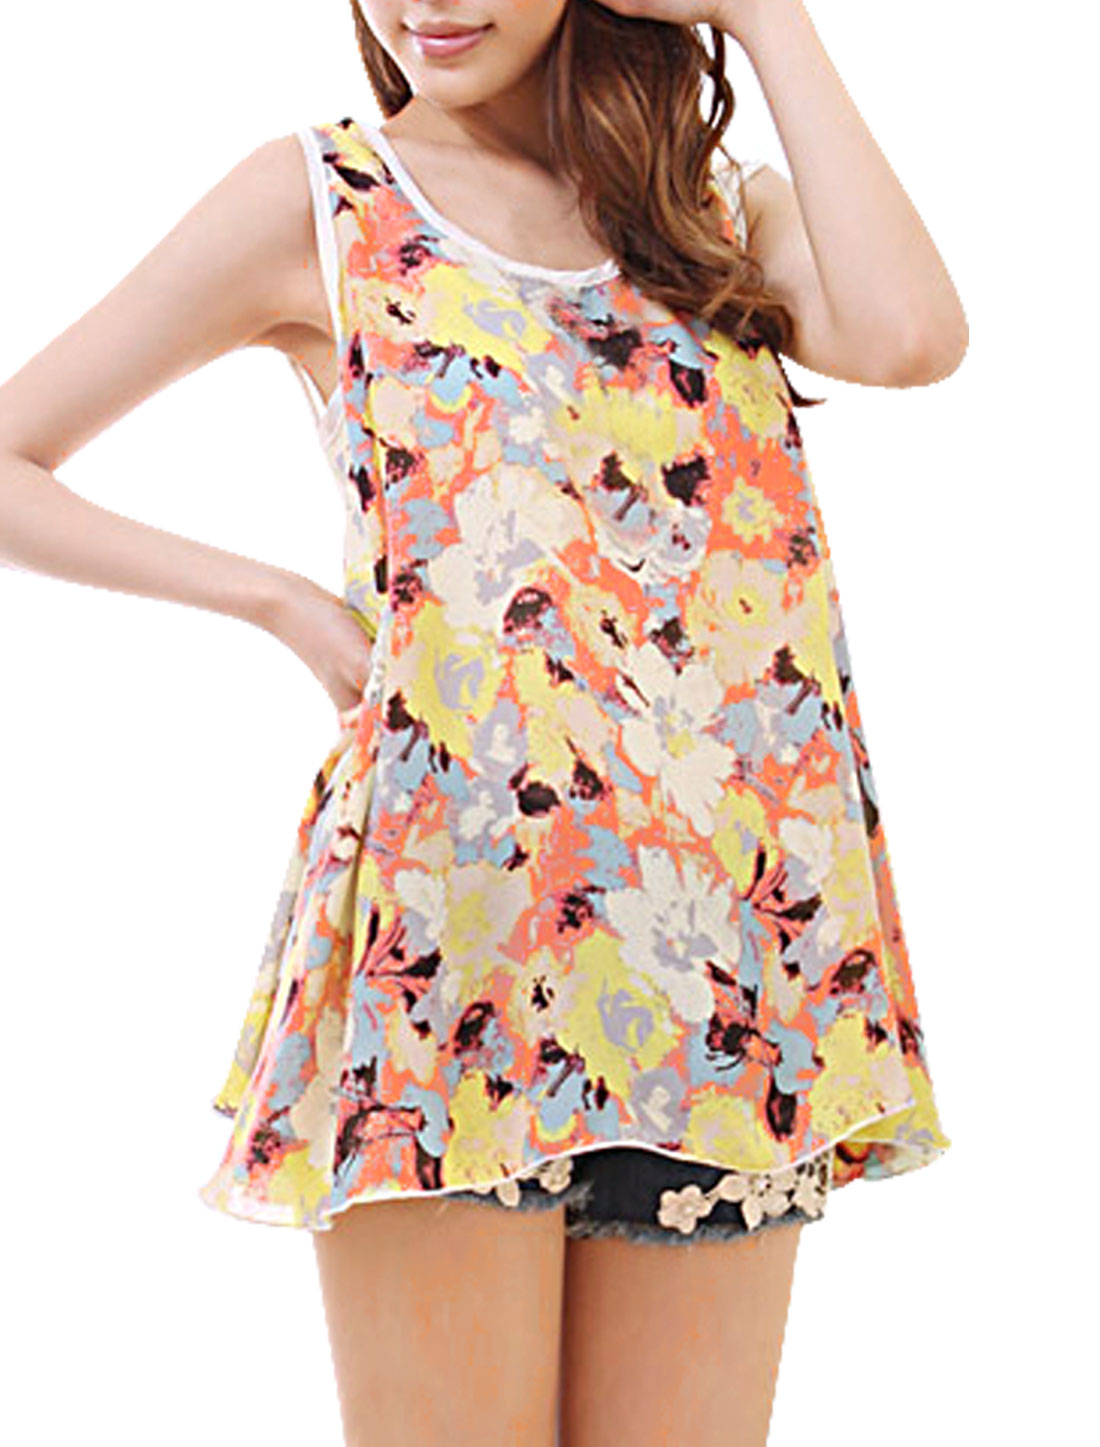 Ladies Multicolor Floral Prints Leisure Sleeveless Summer Chiffon Tank Tops S